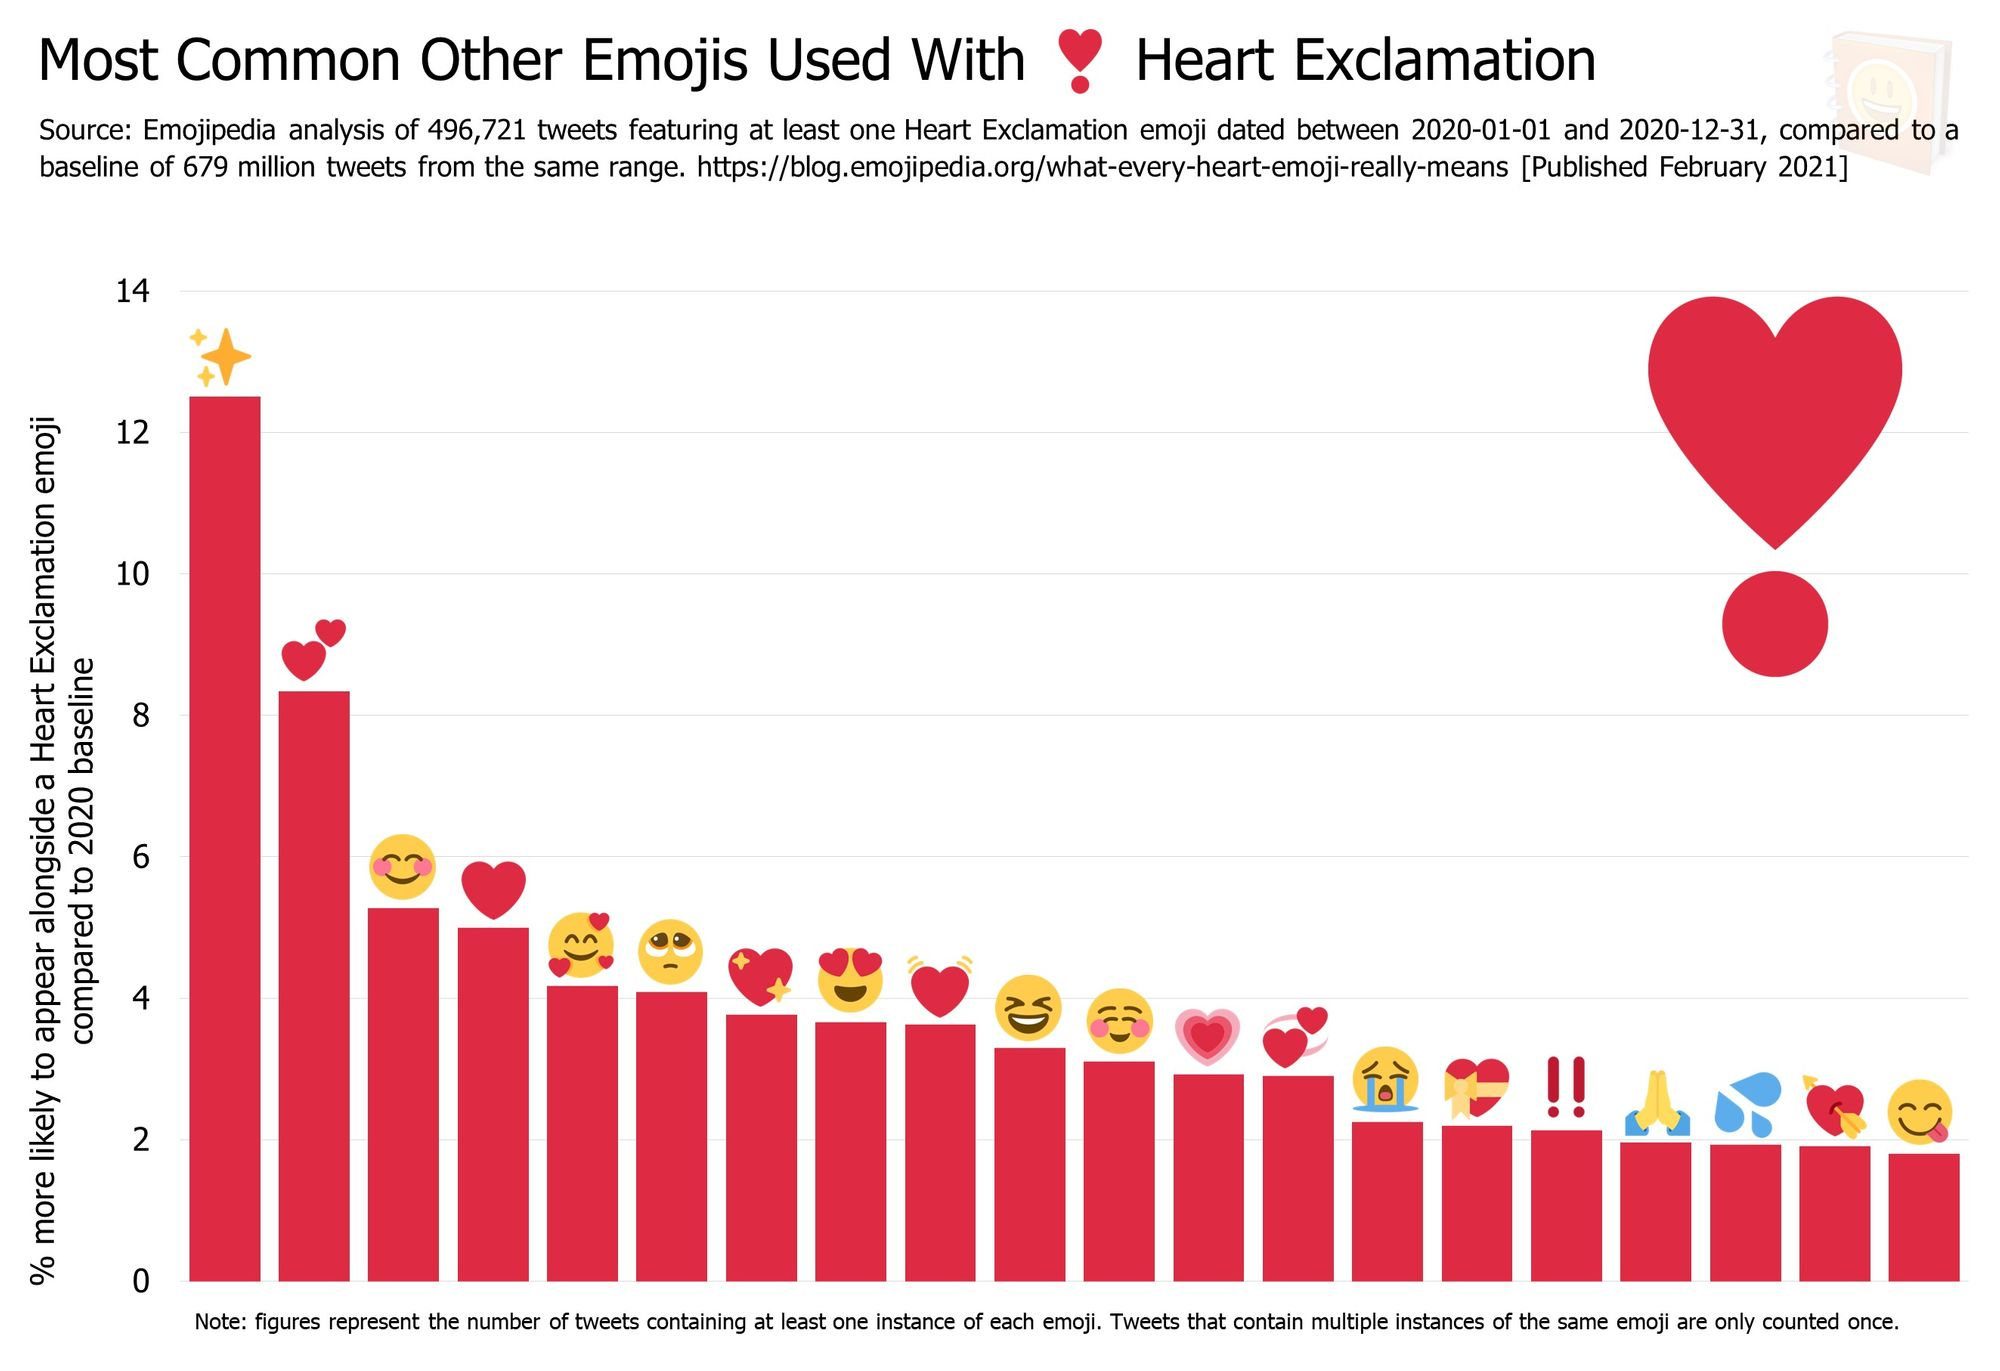 Emojipedia-Blog---What-Every-Heart-Emoji-Really-Means---Most-Common-Other-Emojis-Used-With------Heart-Exclamation-1